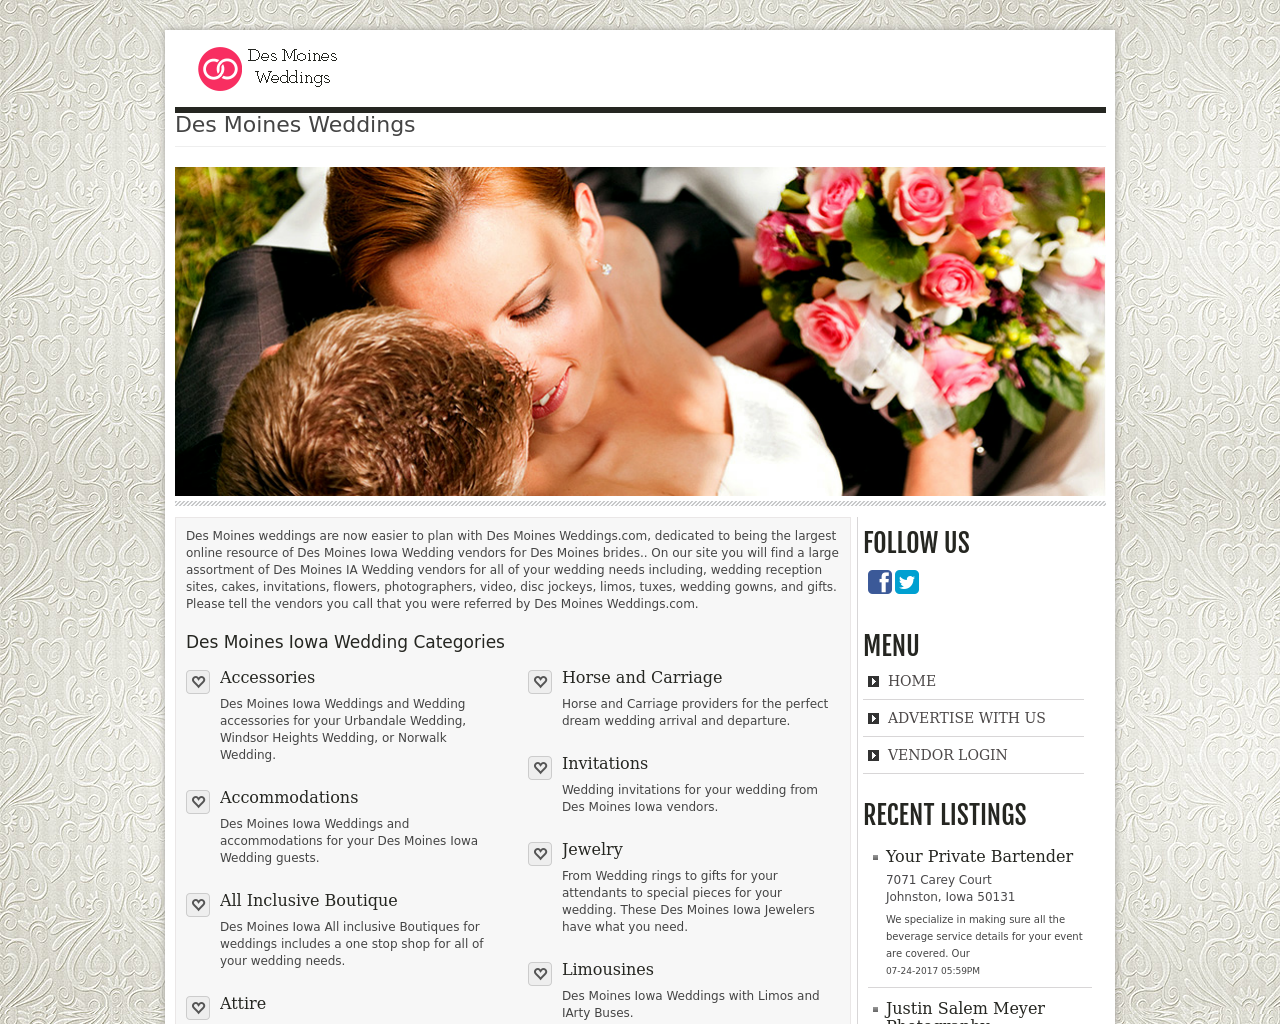 Des-Moines-Weddings-Advertising-Reviews-Pricing